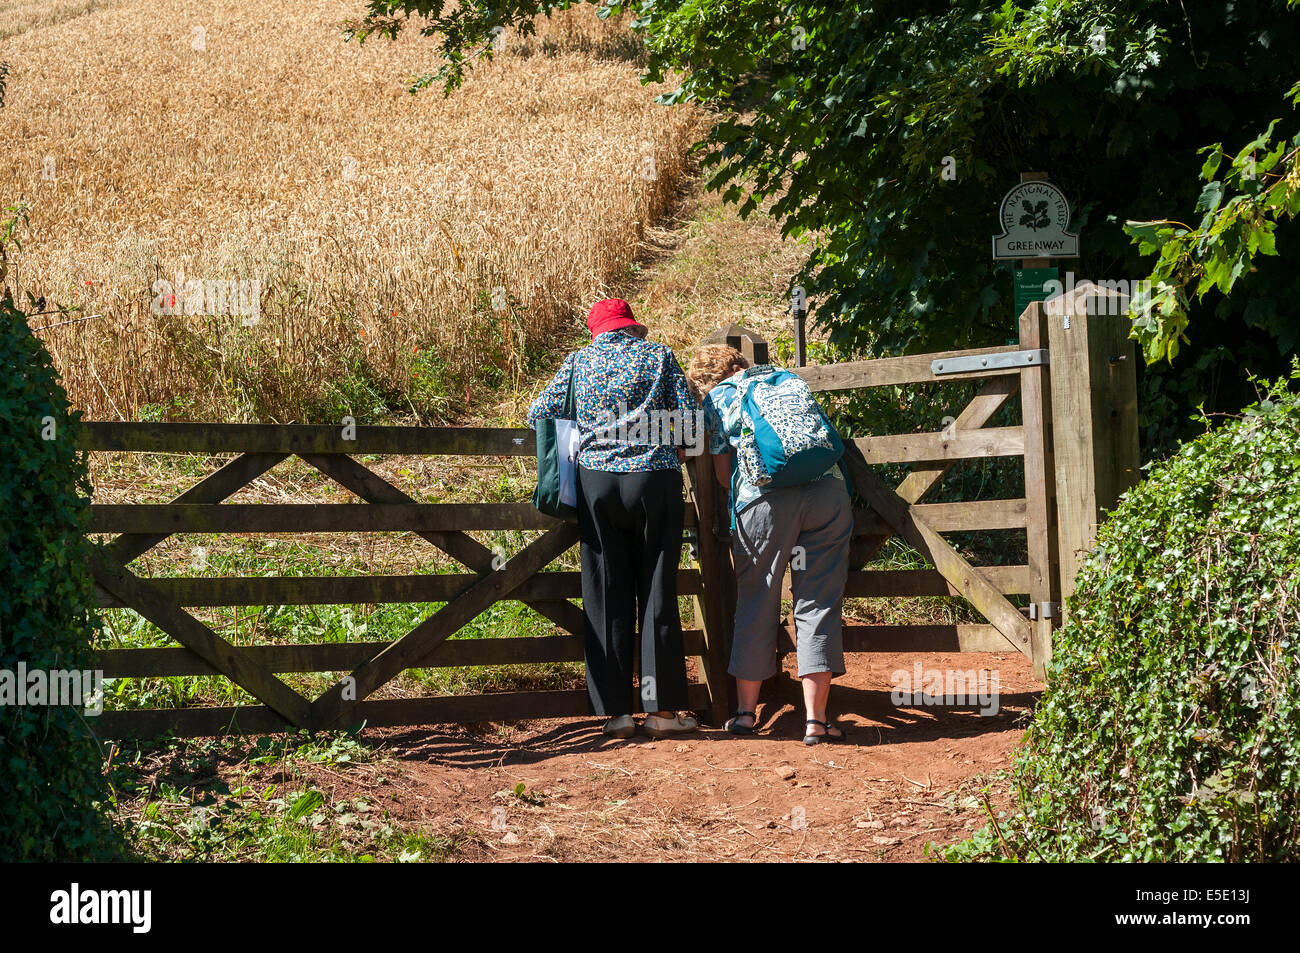 visitors on the way to greenway,Agatha christie,river Dart,rambling, rights of way,campaigns for access to open - Stock Image